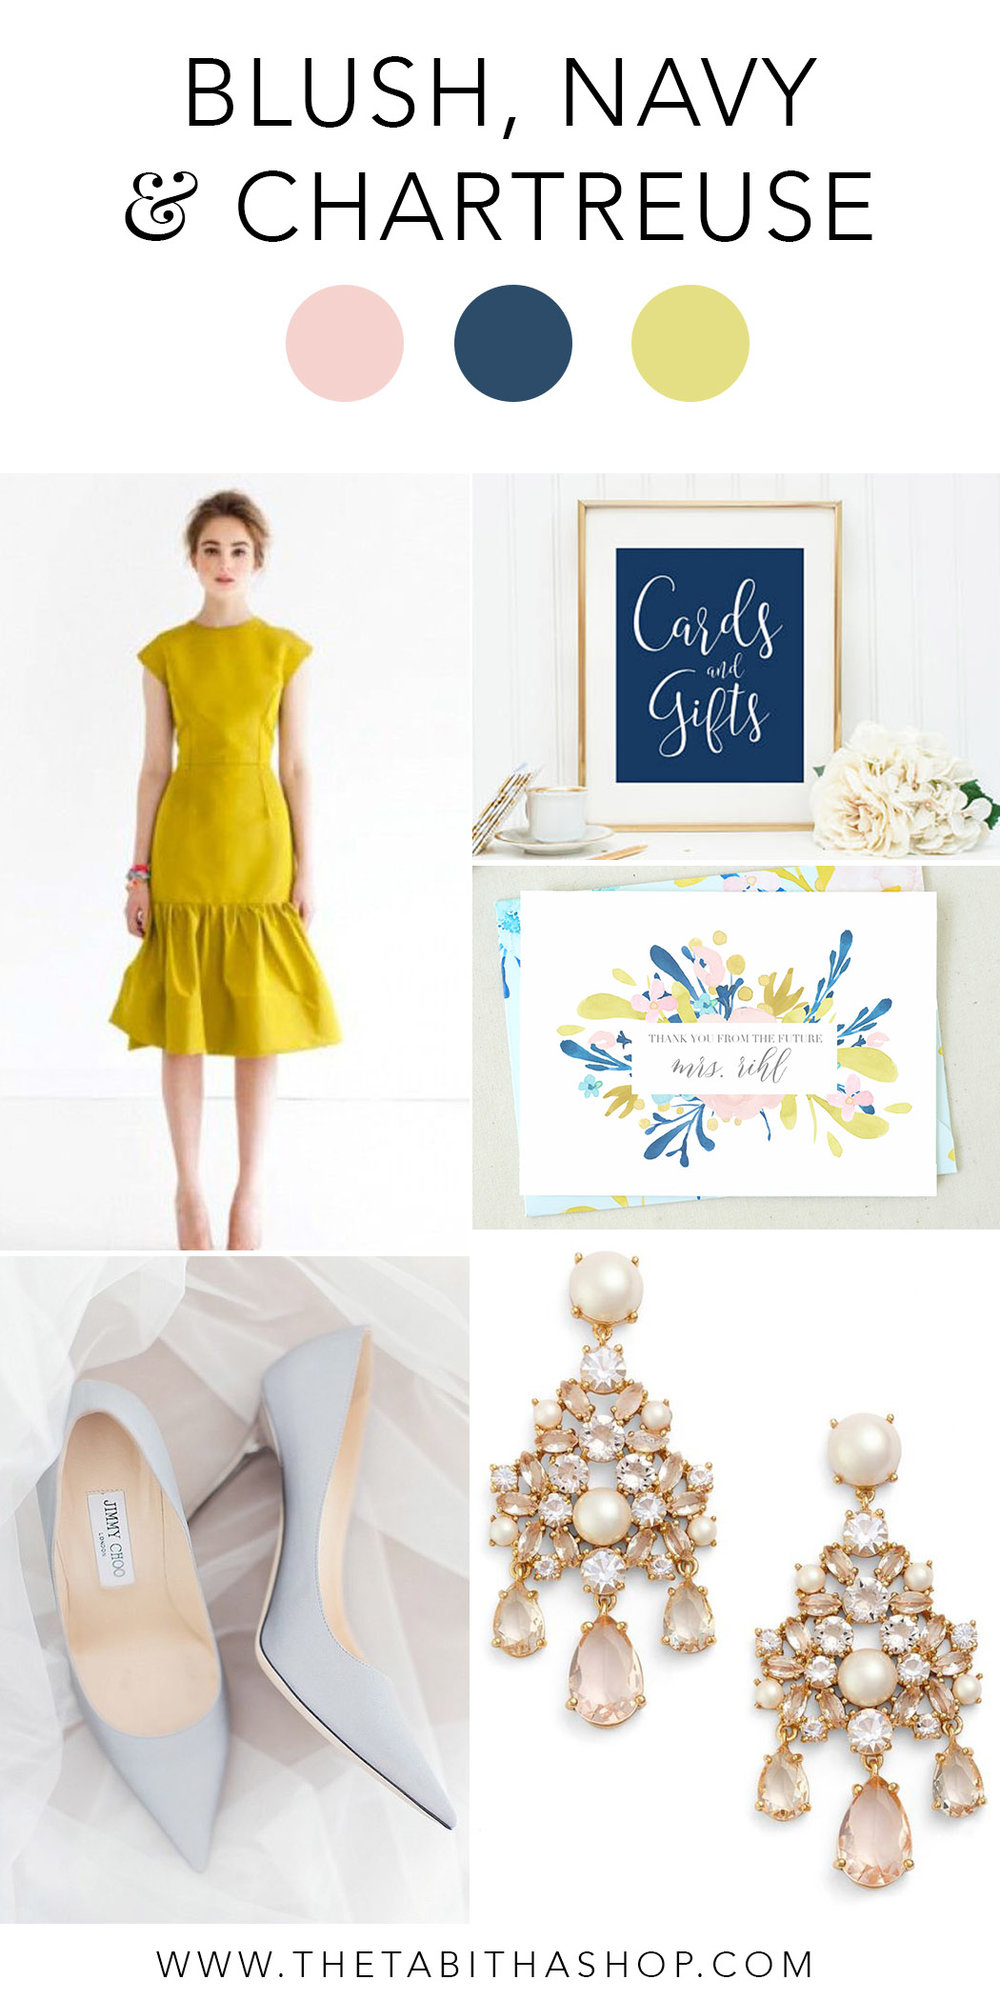 Clockwise, starting with top left: Dress and photo via Pinterest // Sign by  MadKittyMedia  // Future Mrs. Card by  The Tabitha Shop  // Earrings from  Nordstrom  // Photo by  Craig and Eva Sanders Photography  via  ModWedding